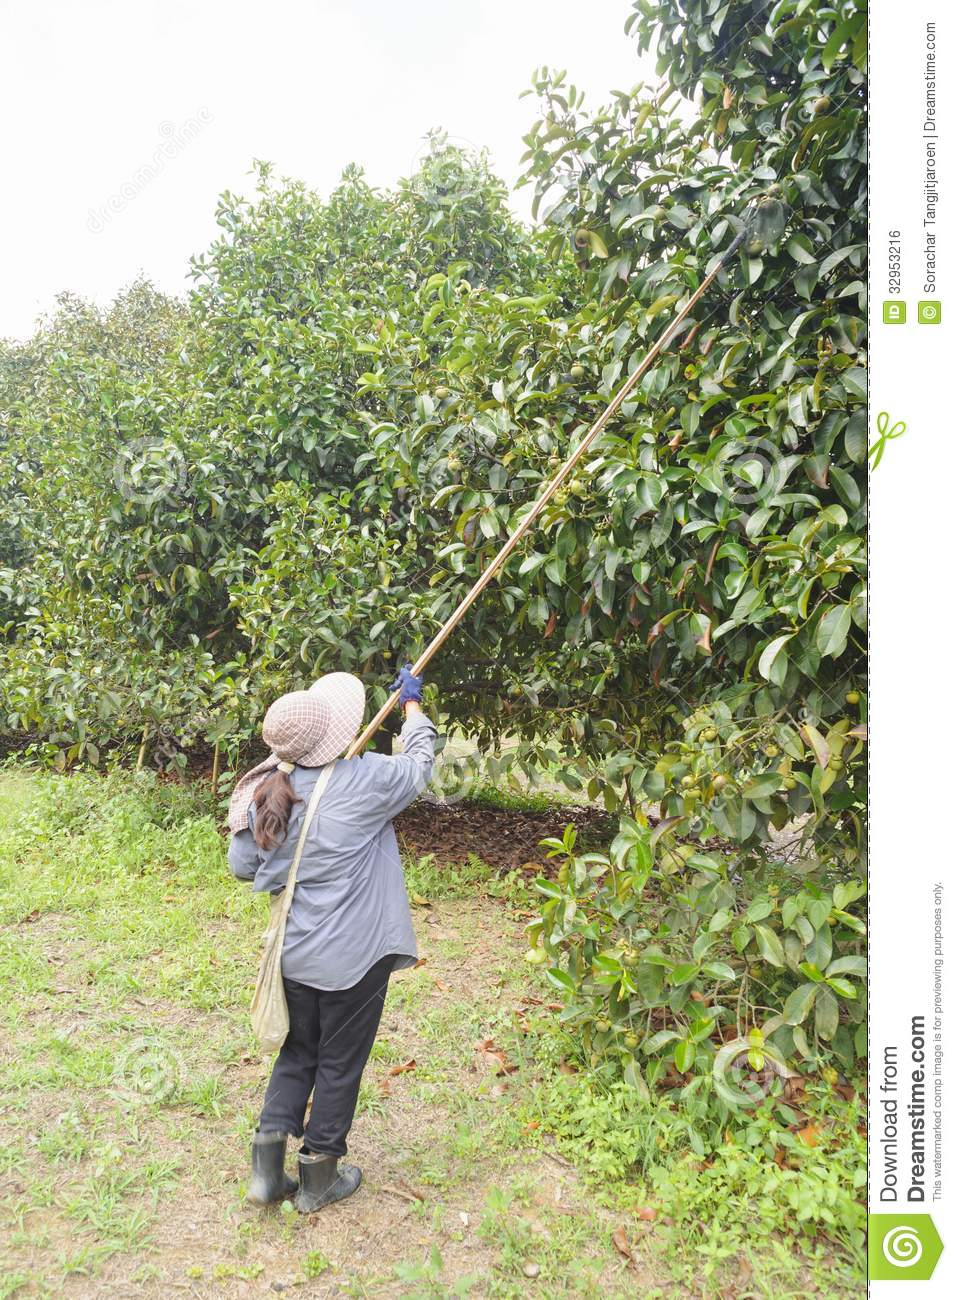 Agriculturists harvesting mangosteen in the garden.